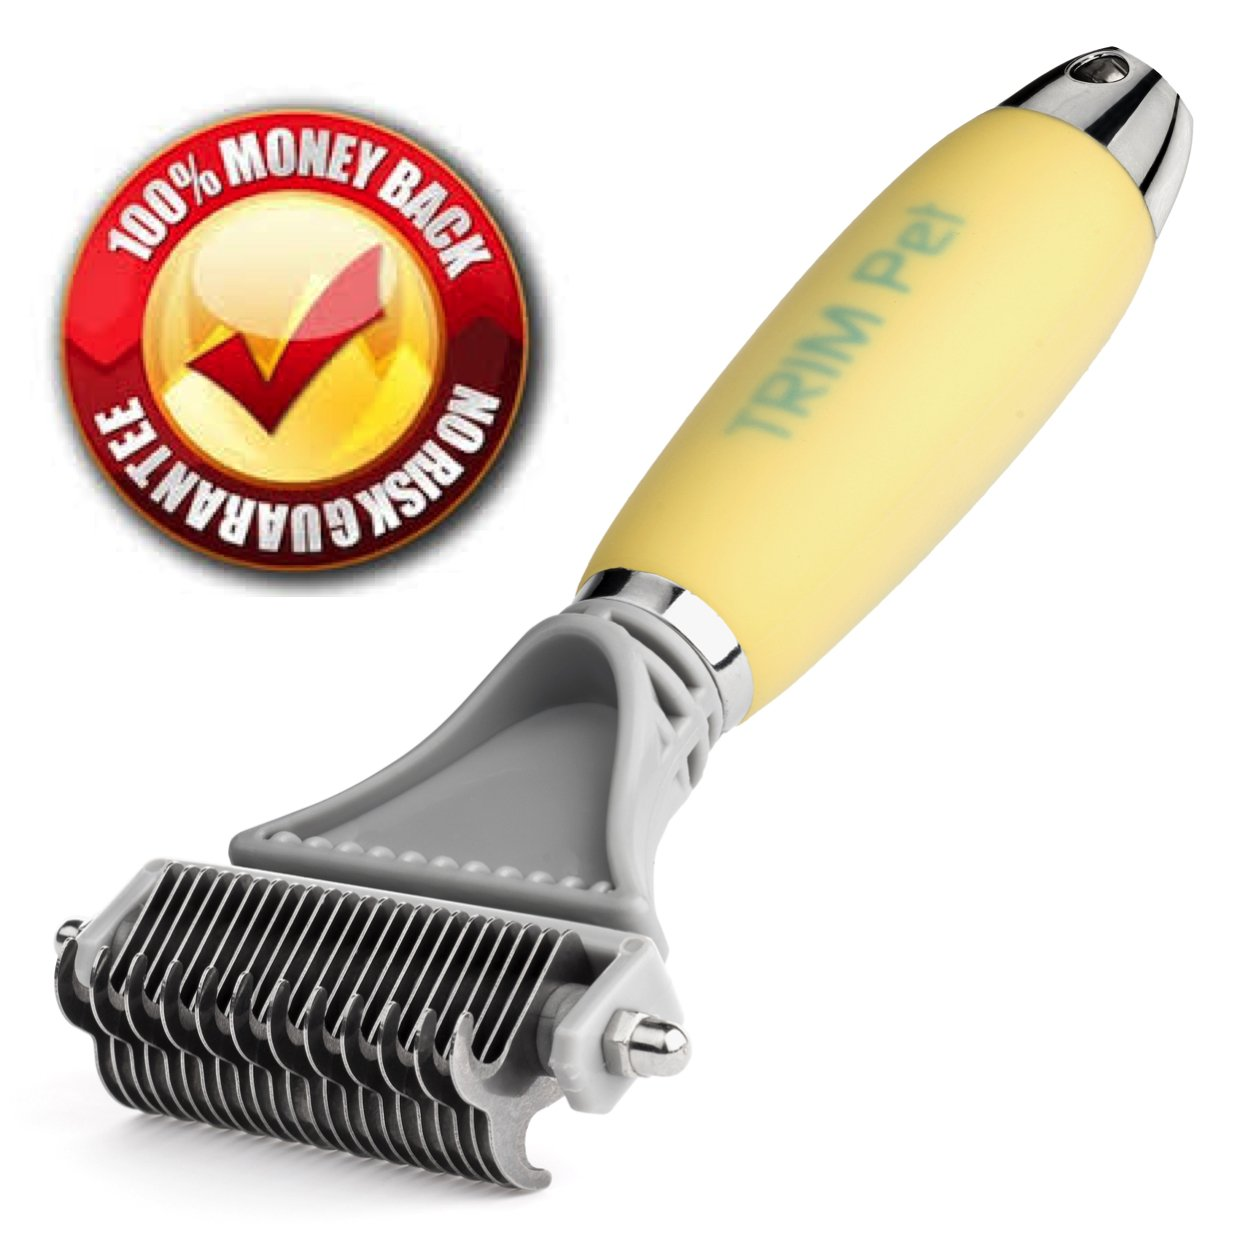 Trim Pet Dematting Comb with 2 Sided Professional Grooming Rake for Cats & Dogs by Trim Pet